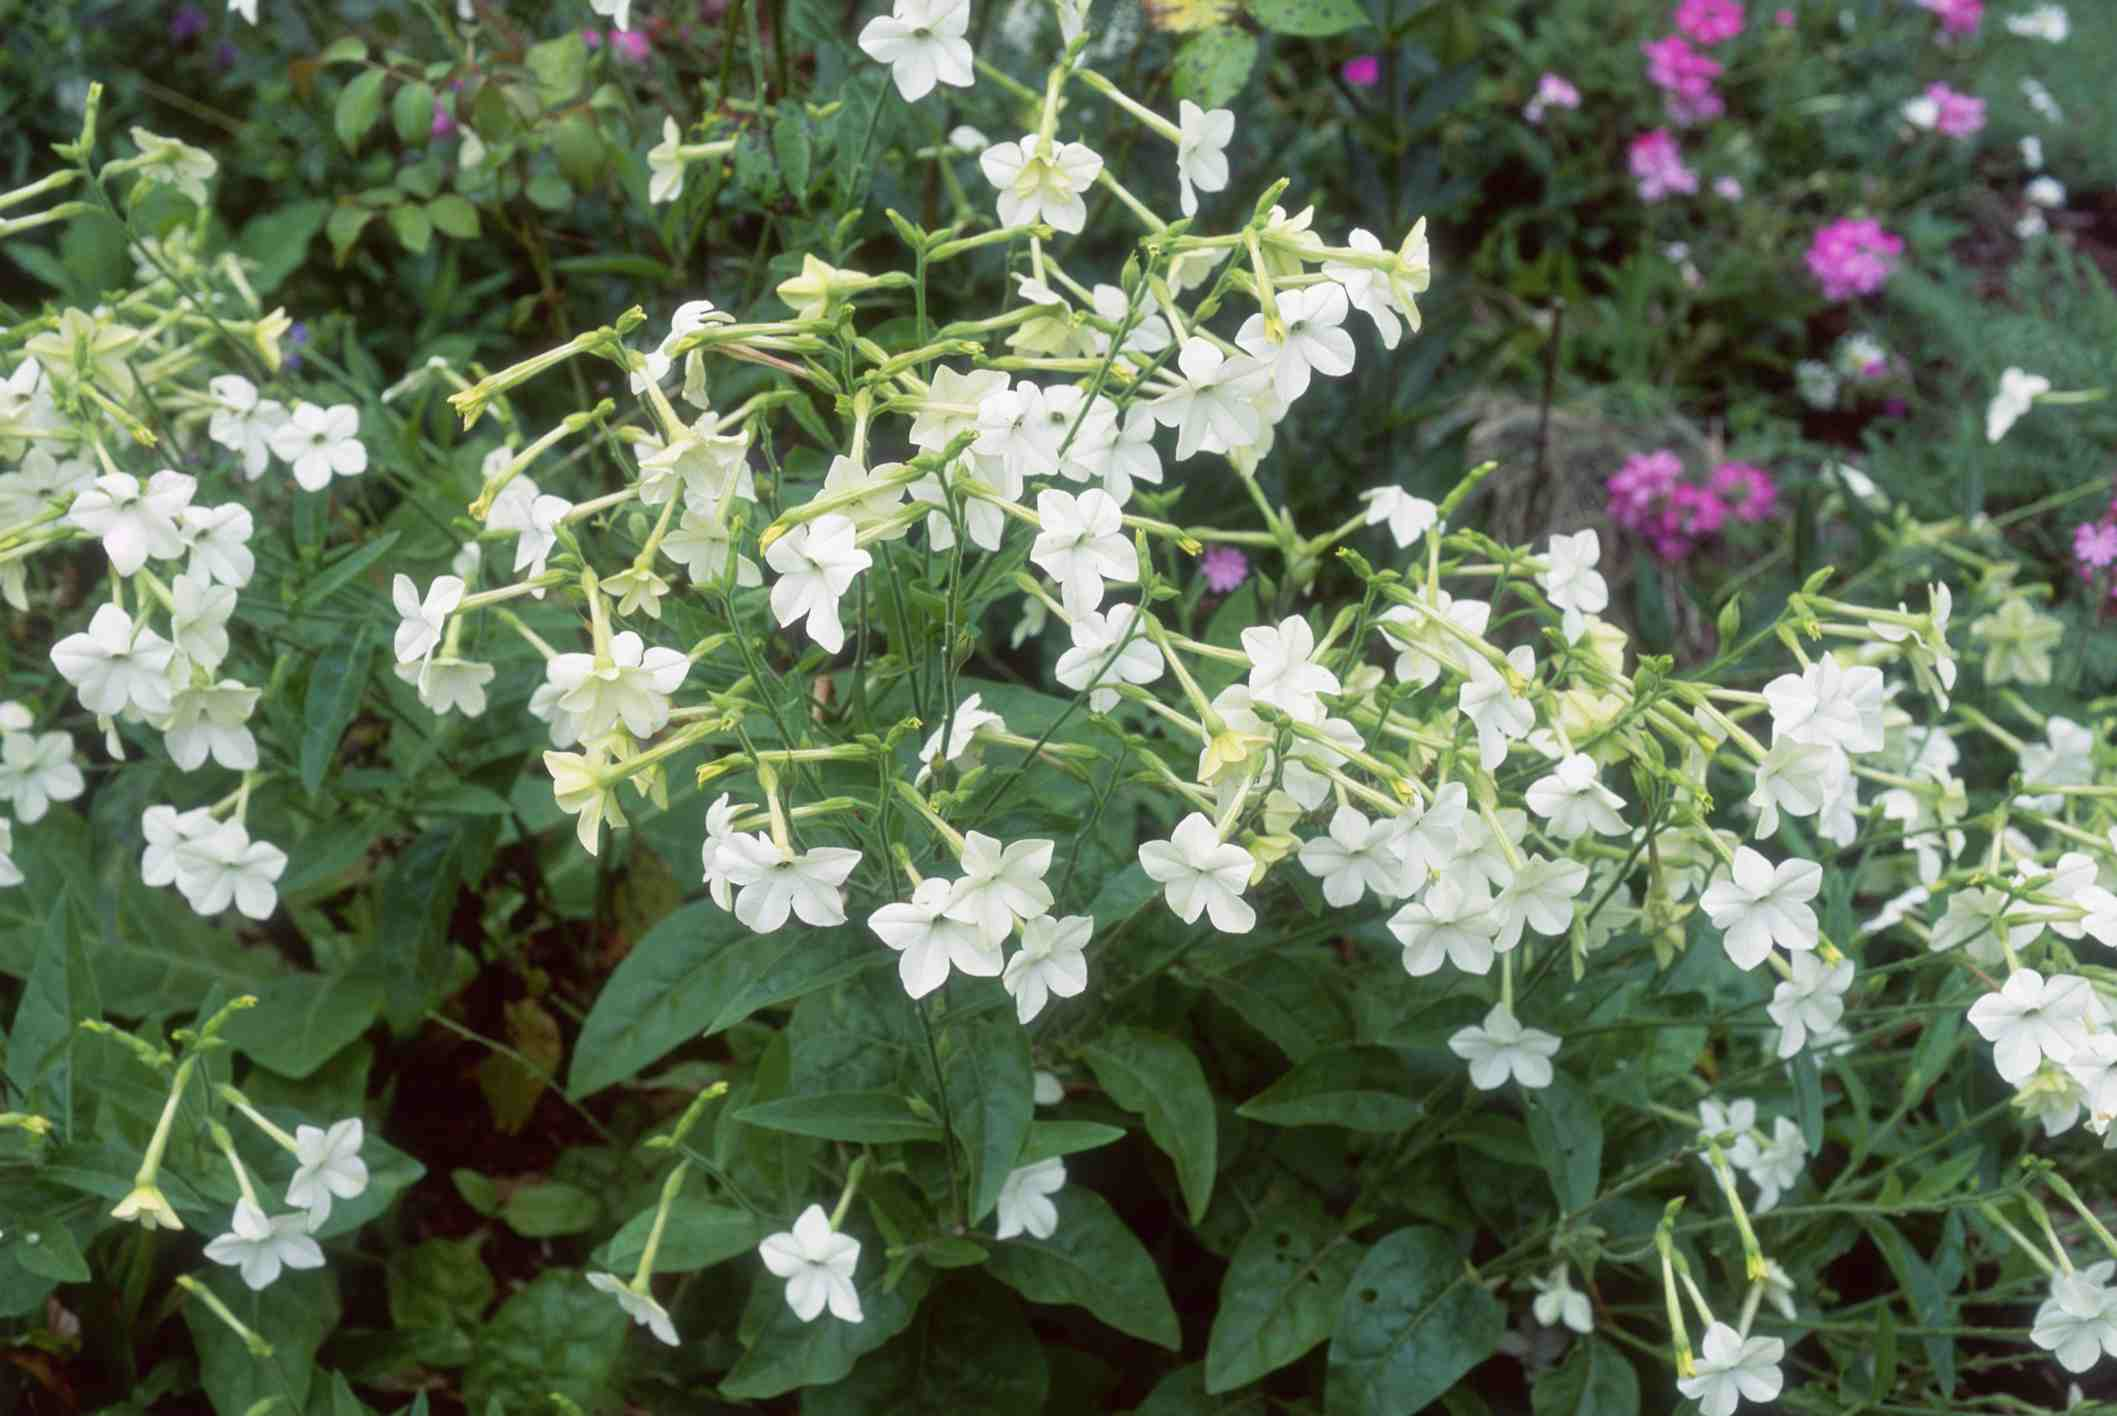 Flowering Tobacco Nicotiana